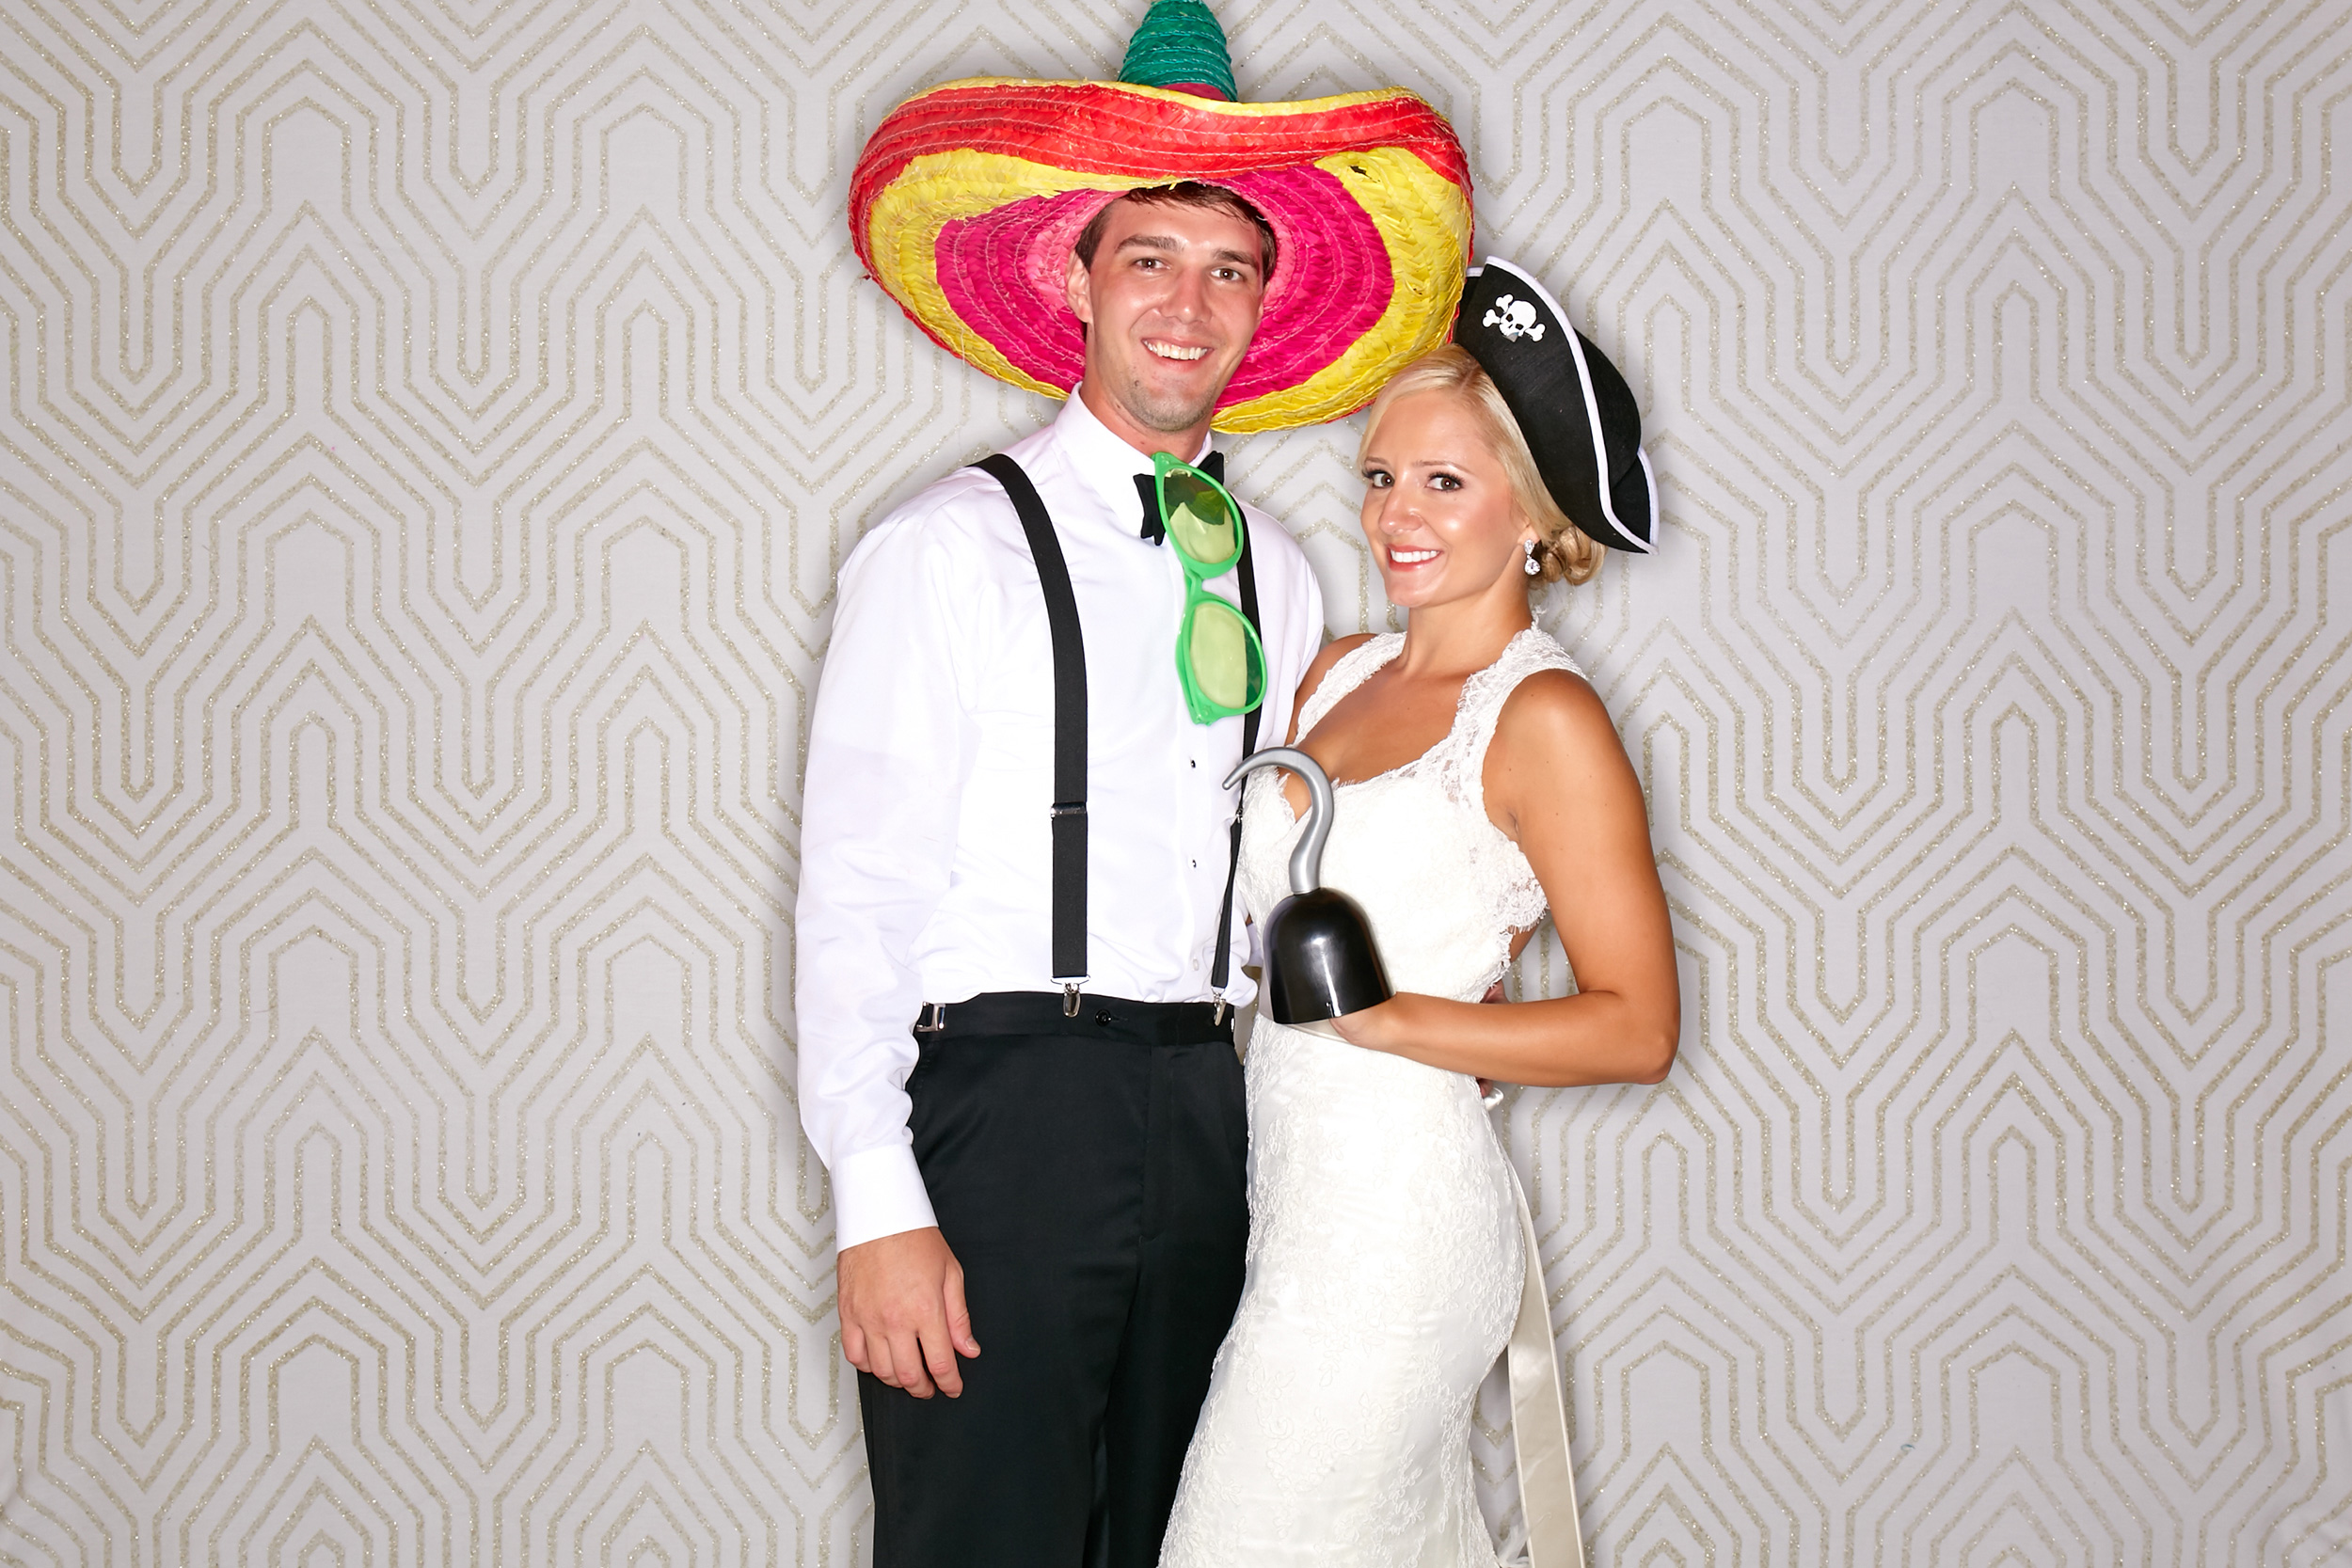 louisville-photo-booth-116.jpg